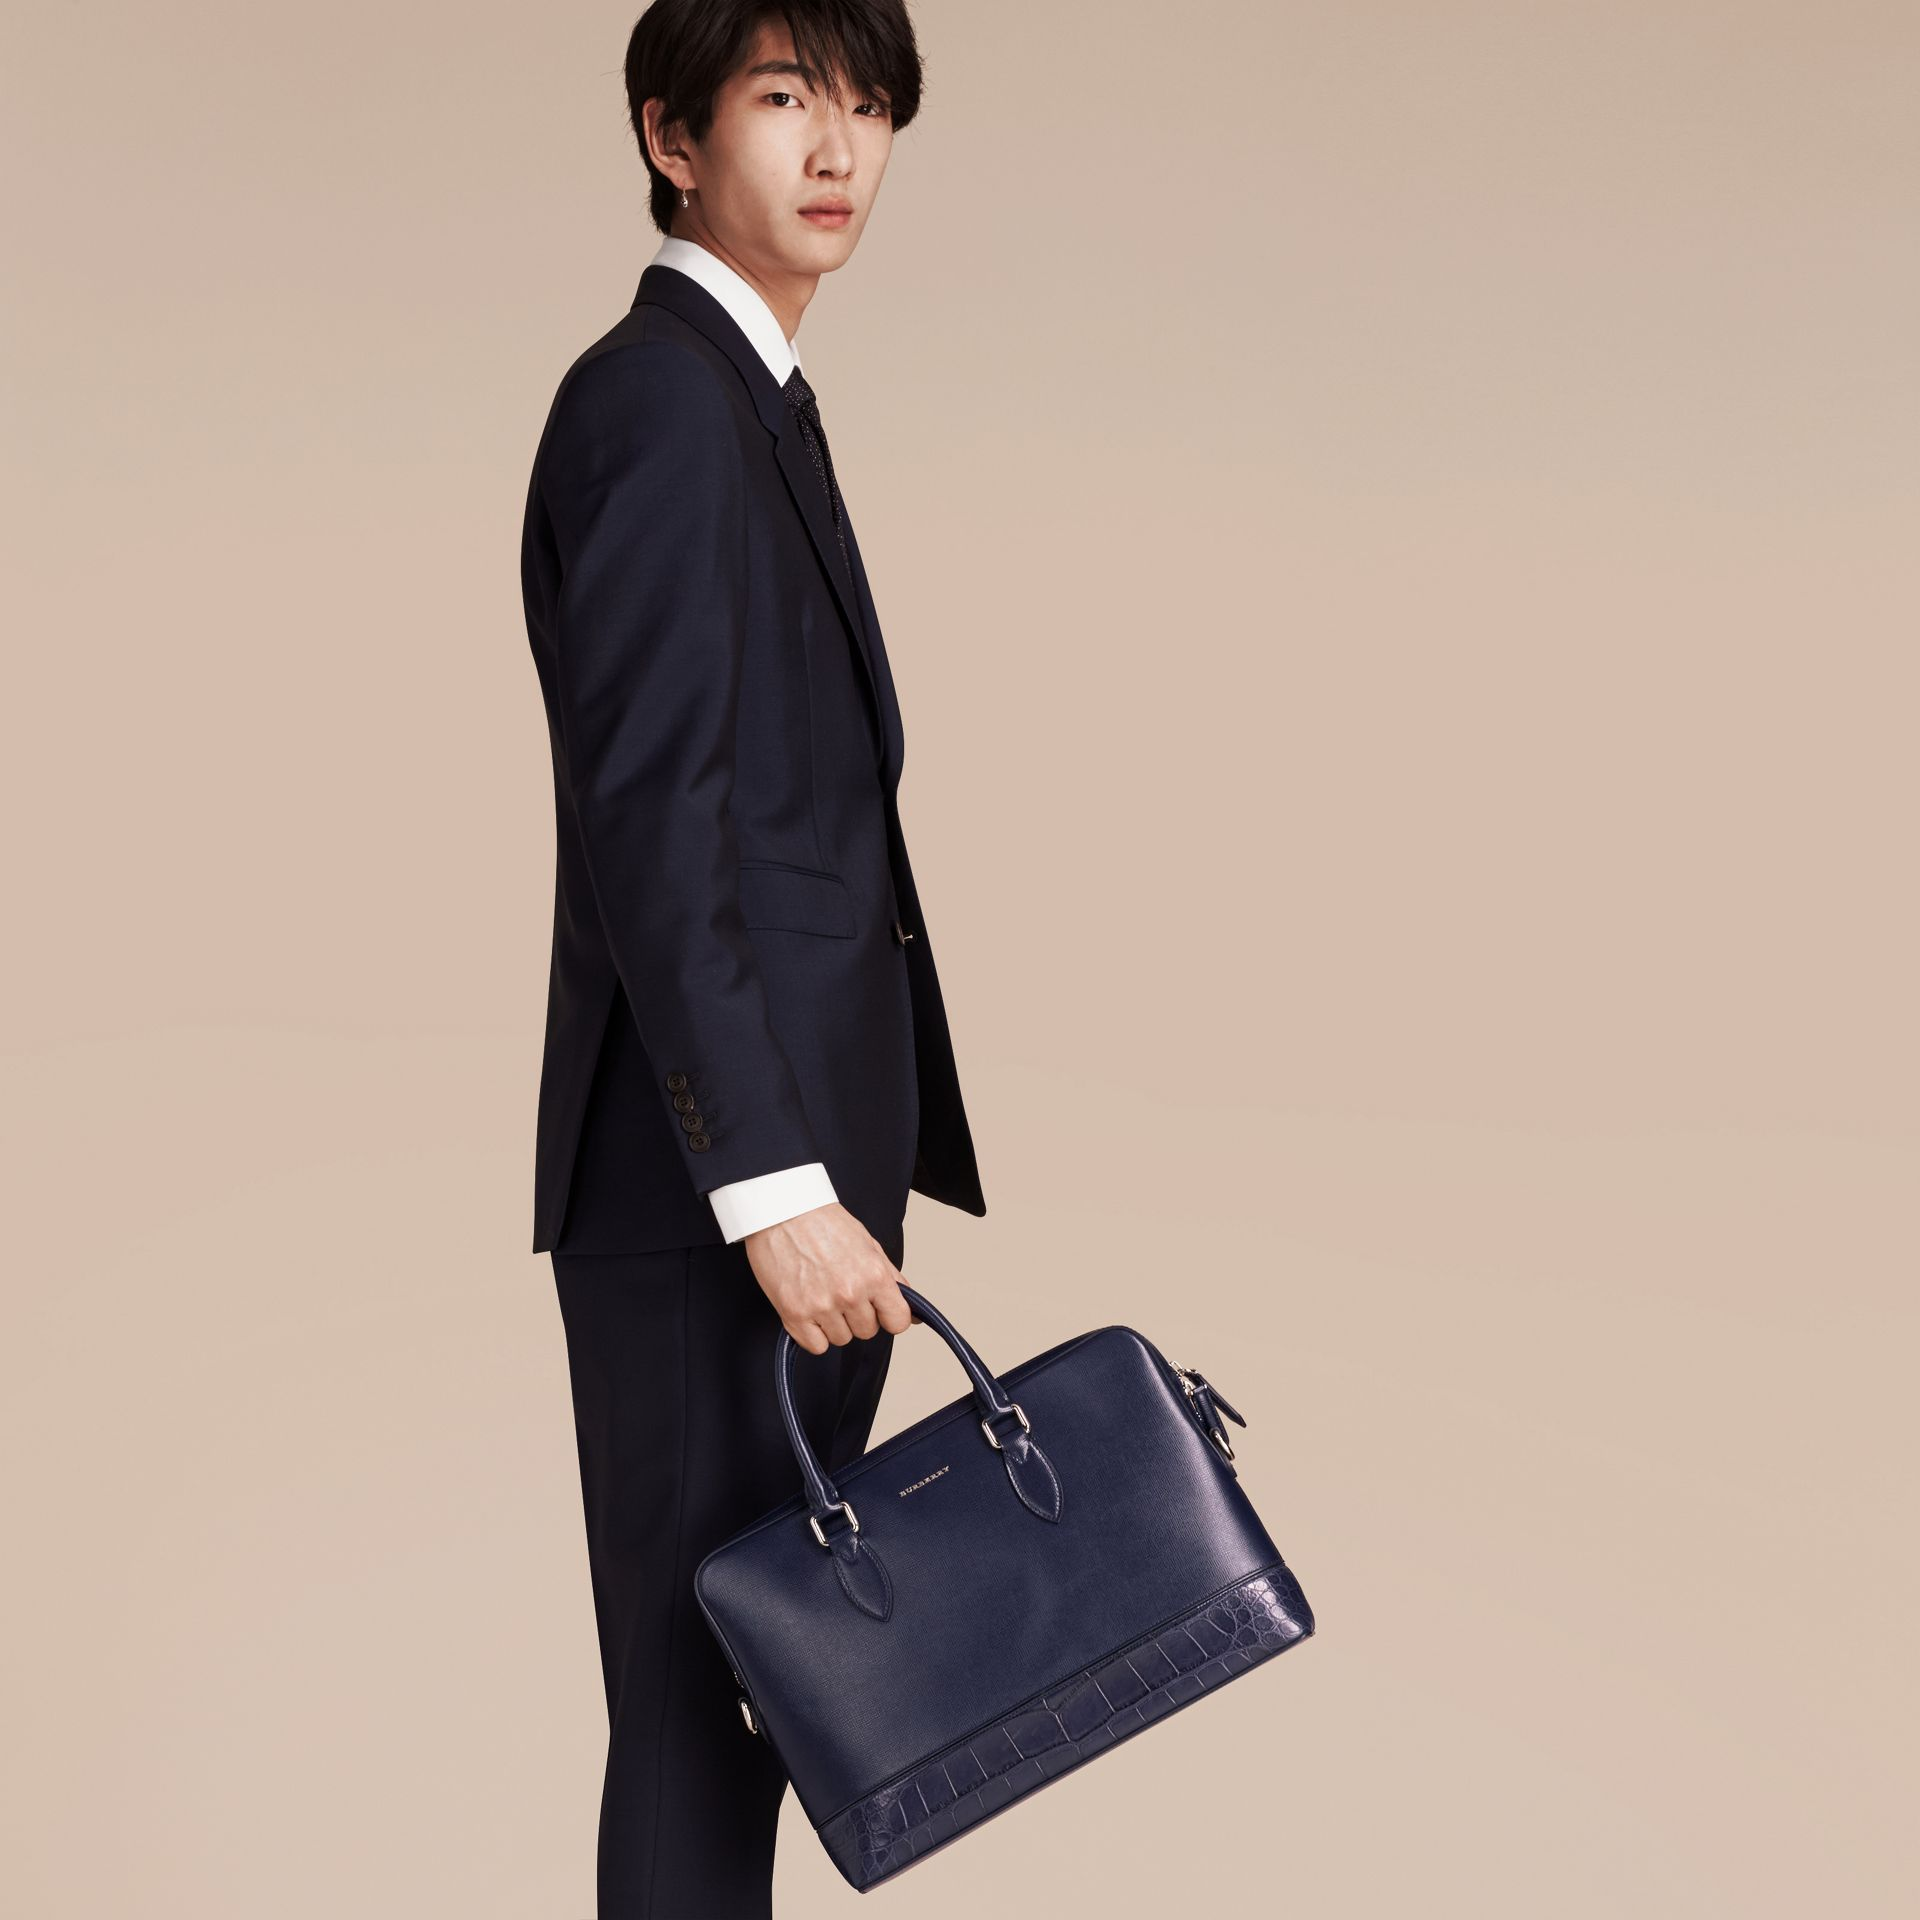 Sac The Barrow fin en cuir London et alligator (Marine Foncé) - Homme | Burberry - photo de la galerie 3